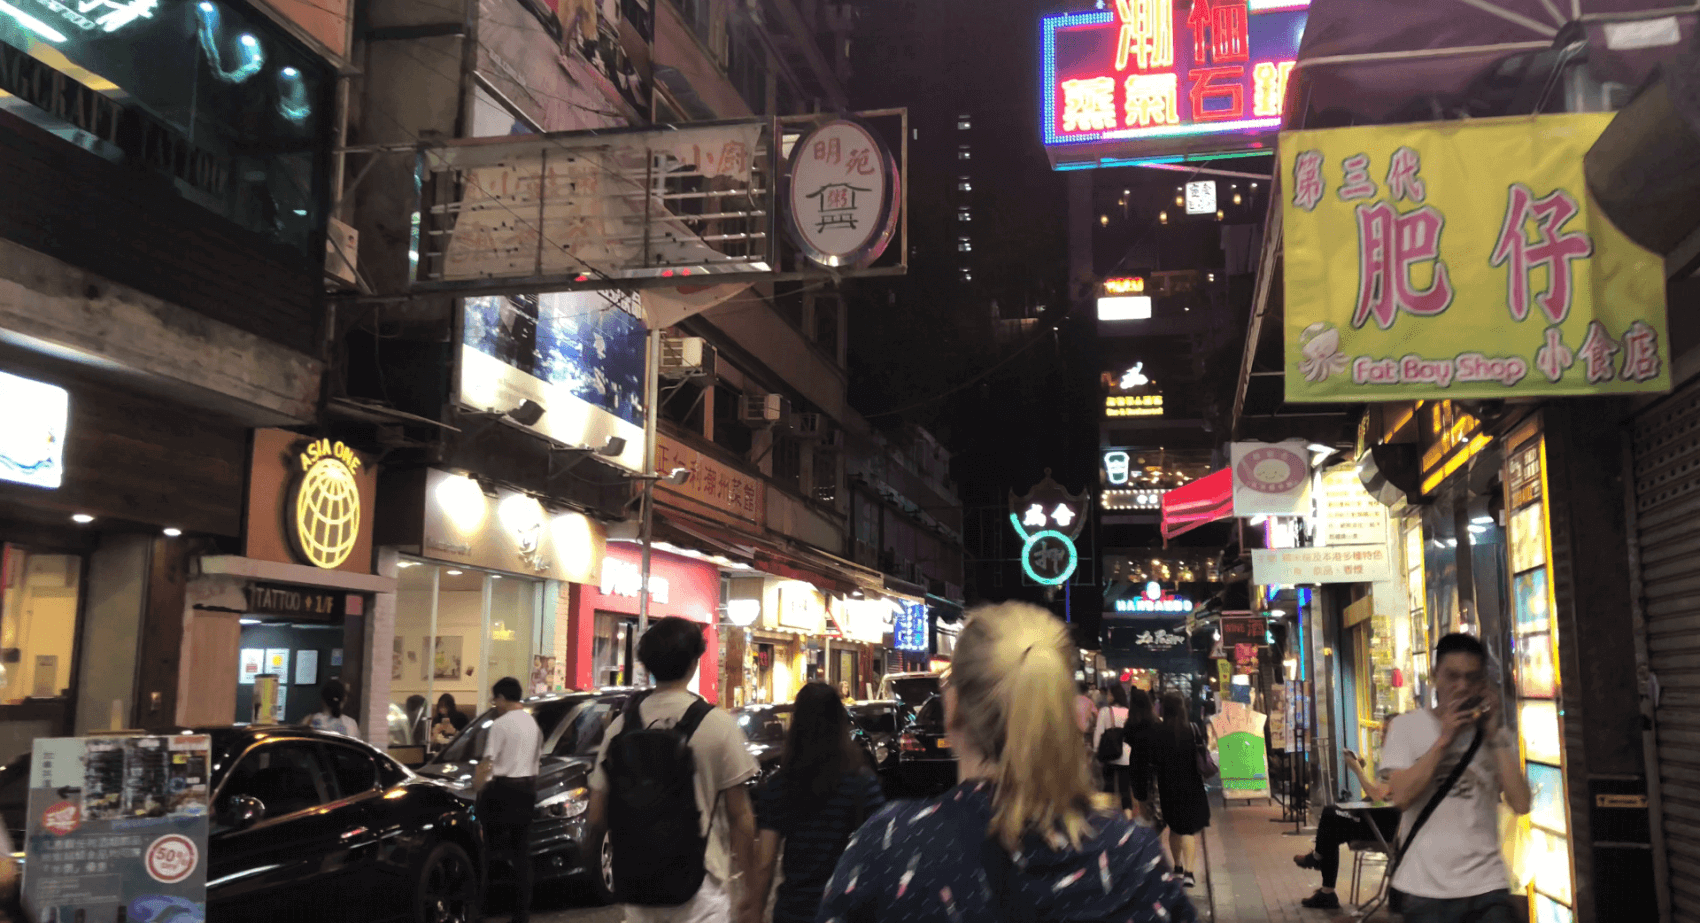 Laura in Hong Kong | Laura and Ollie